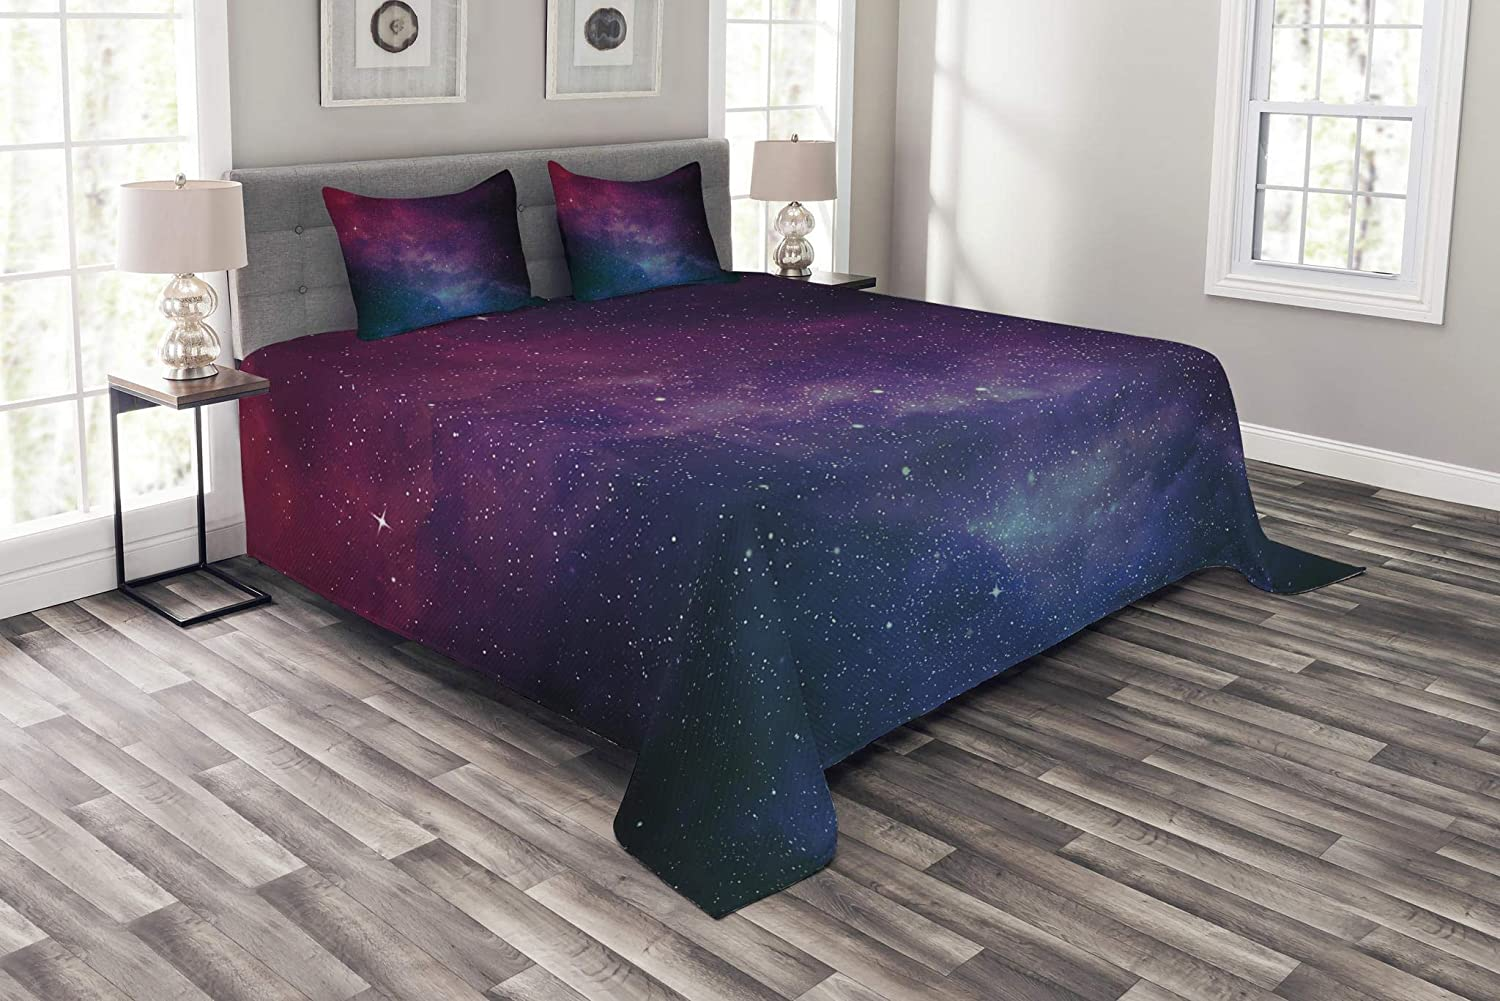 Lunarable Star Bedspread Set King Size, Universe Filled with Stars Pale Ombre Nebula and Galaxy Interstellar Astronomy, Decorative Quilted 3 Piece Coverlet Set with 2 Pillow Shams, Magenta bluee Black